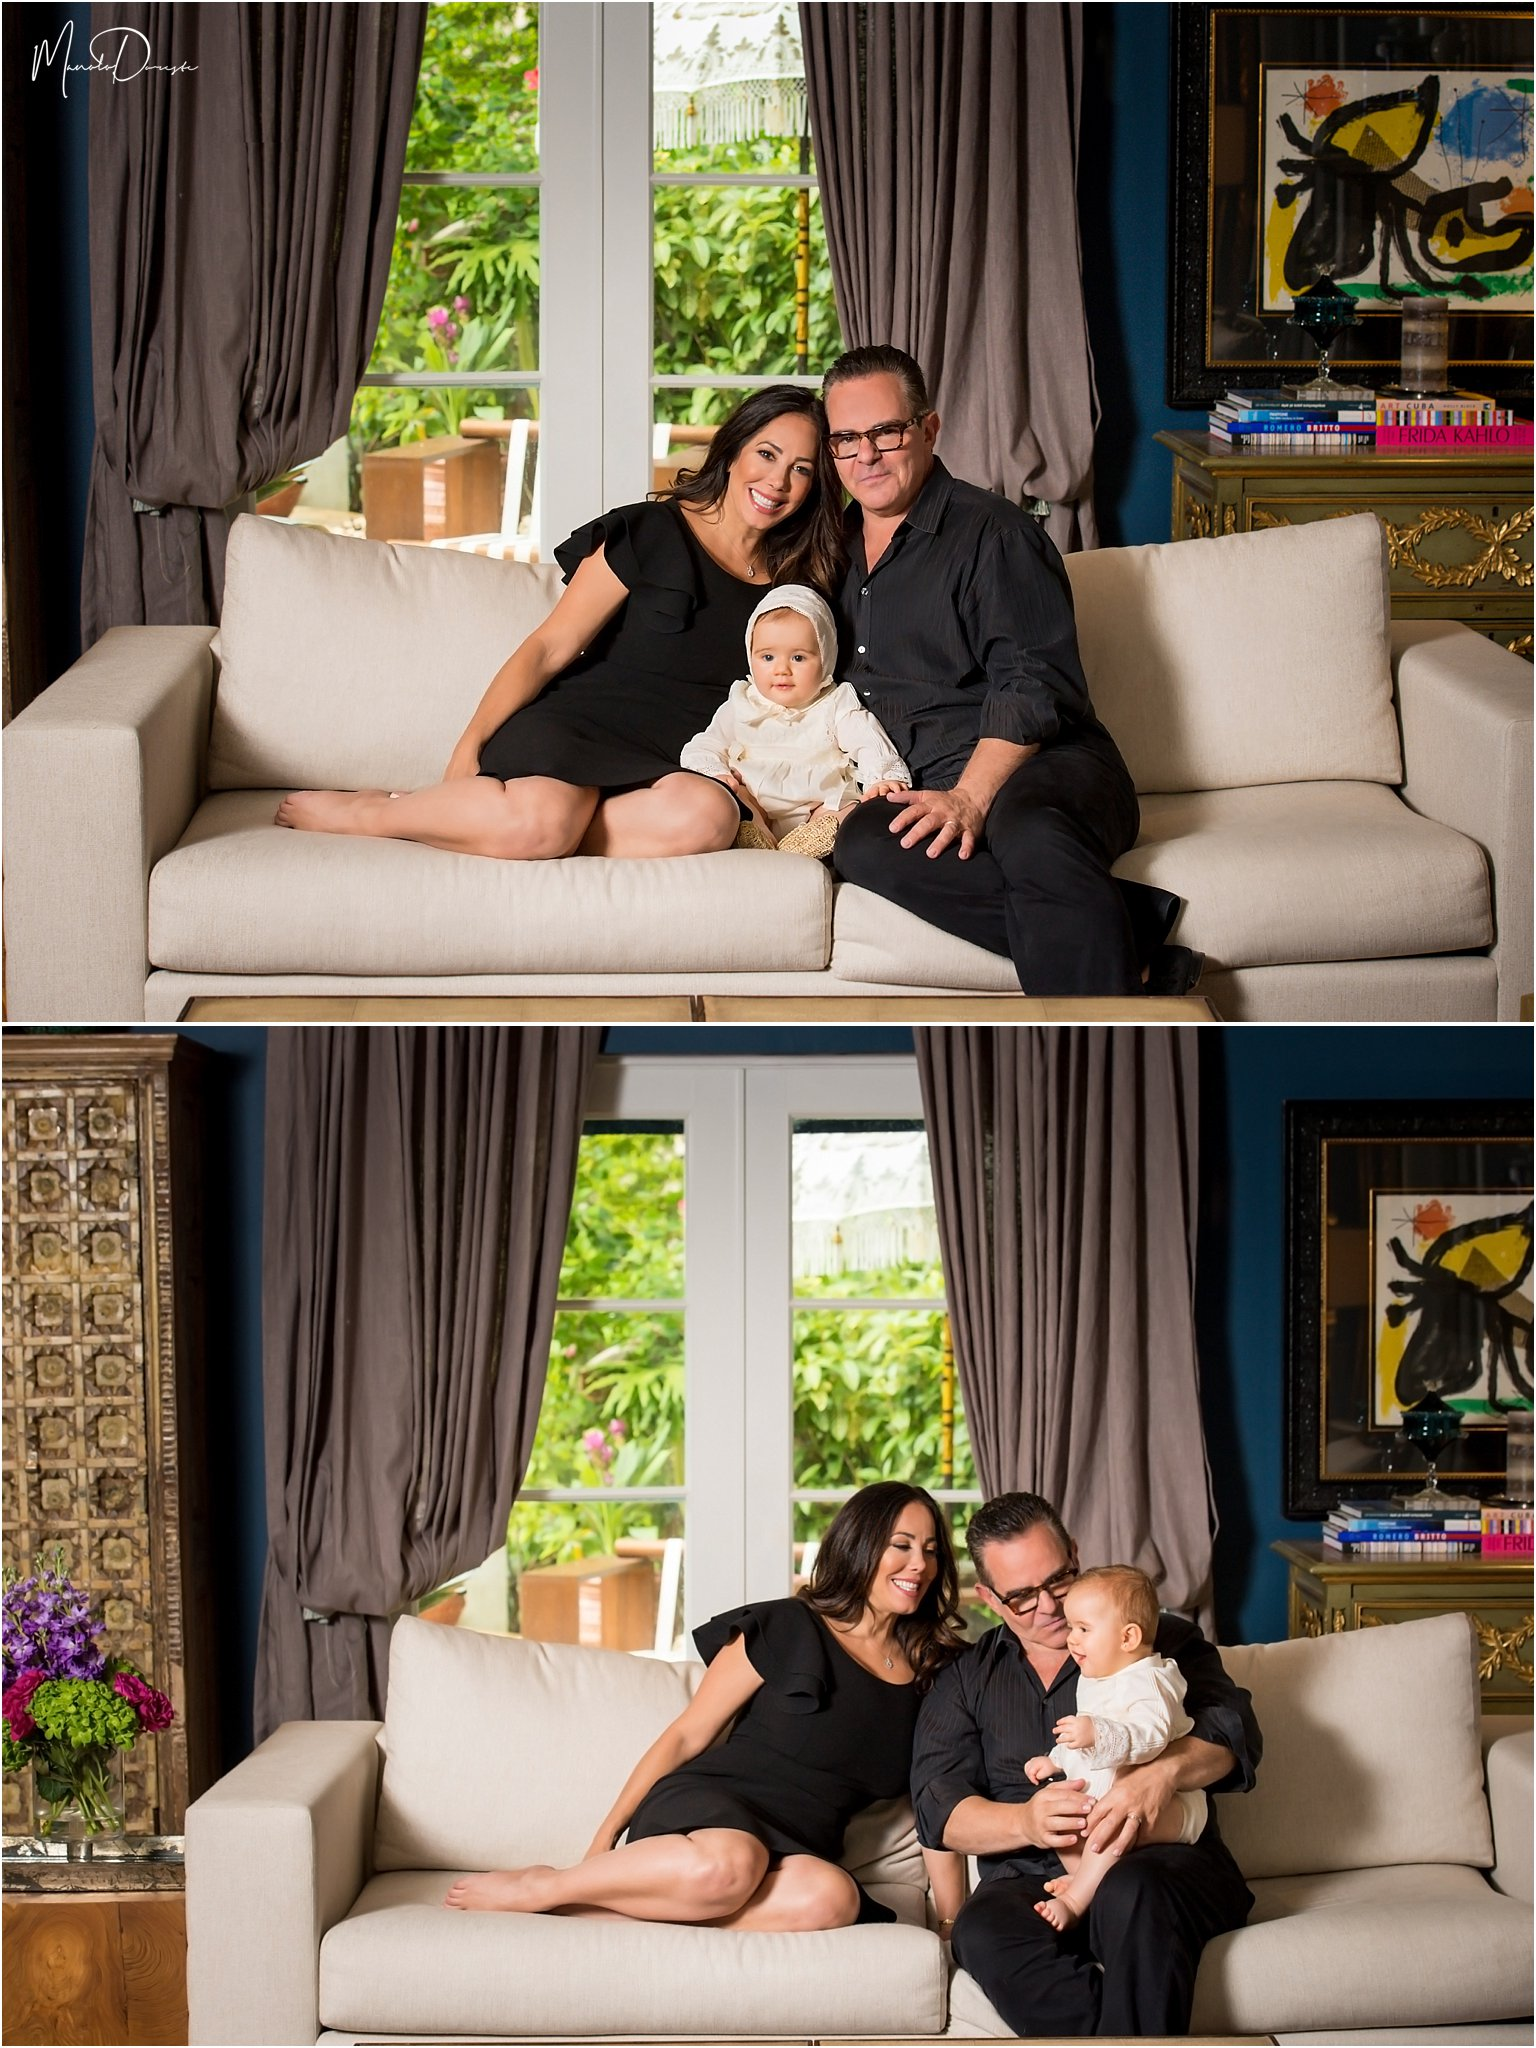 0304_ManoloDoreste_InFocusStudios_Wedding_Family_Photography_Miami_MiamiPhotographer.jpg